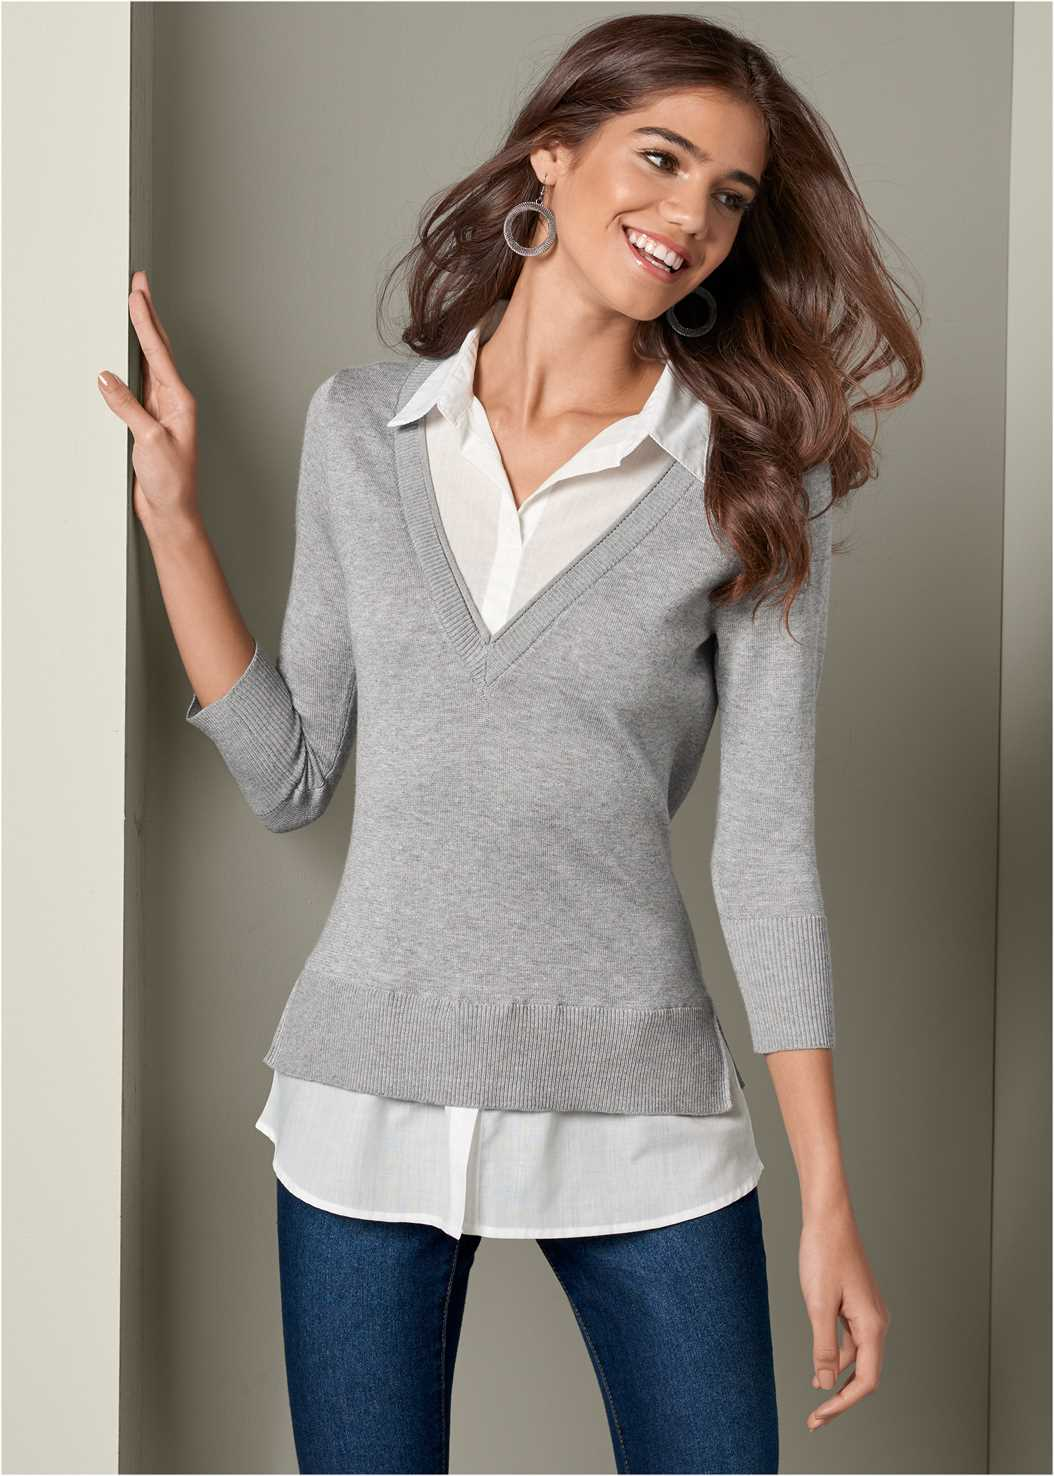 Twofer Sweater,Mid Rise Color Skinny Jeans